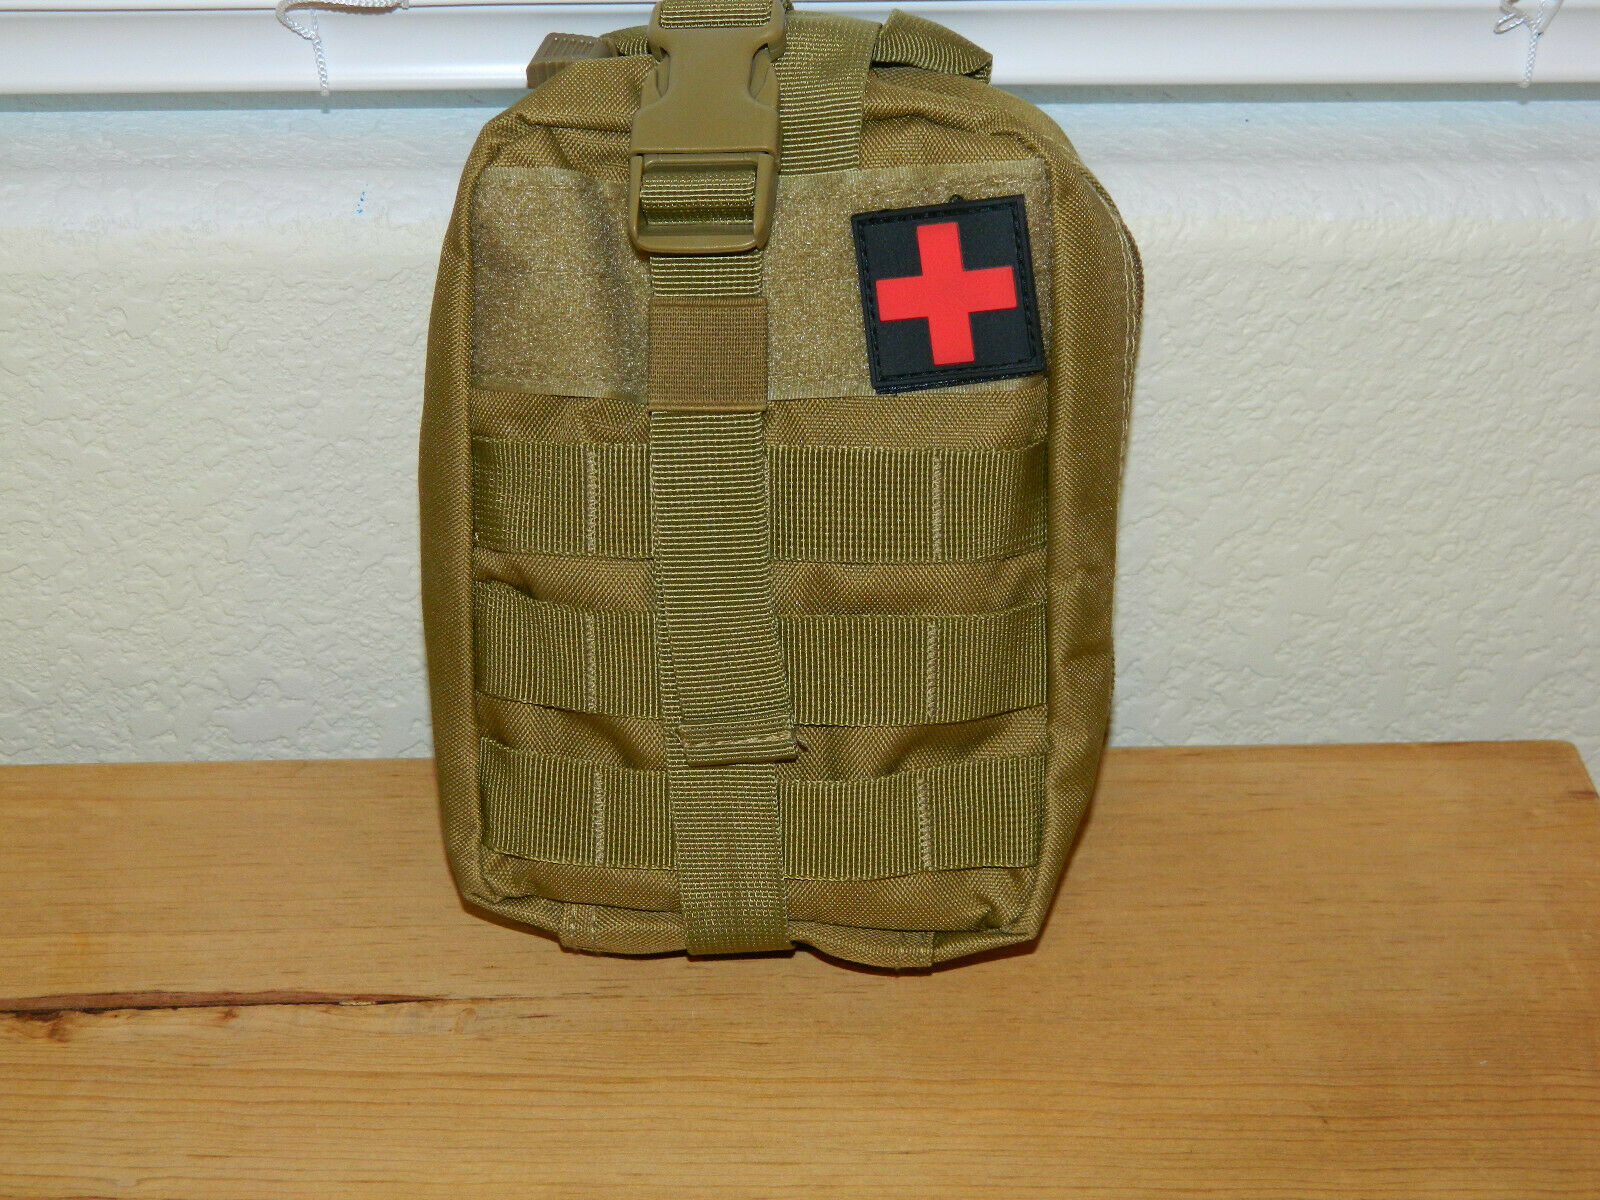 Tactical First Aid Kit Survival Molle Ripaway EMT Outdoor Me